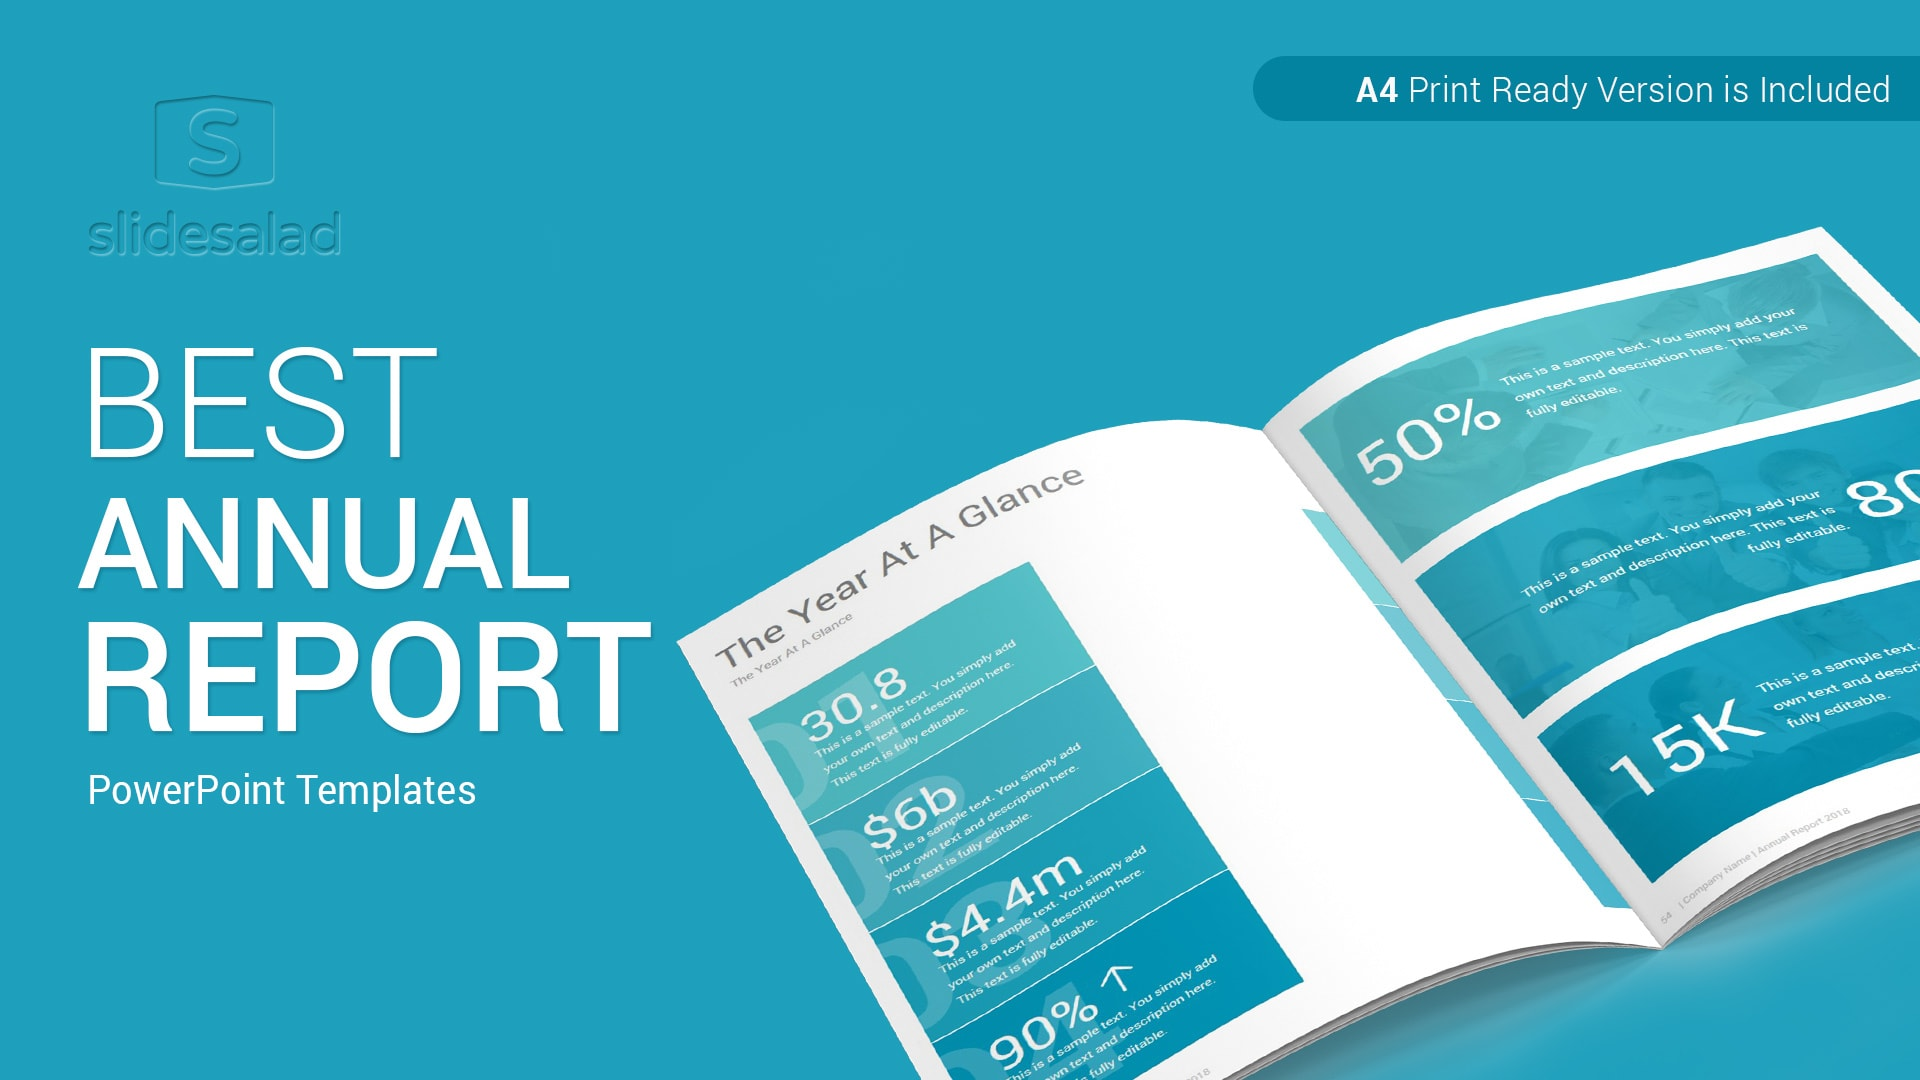 Best-Annual-Report-PowerPoint-Templates